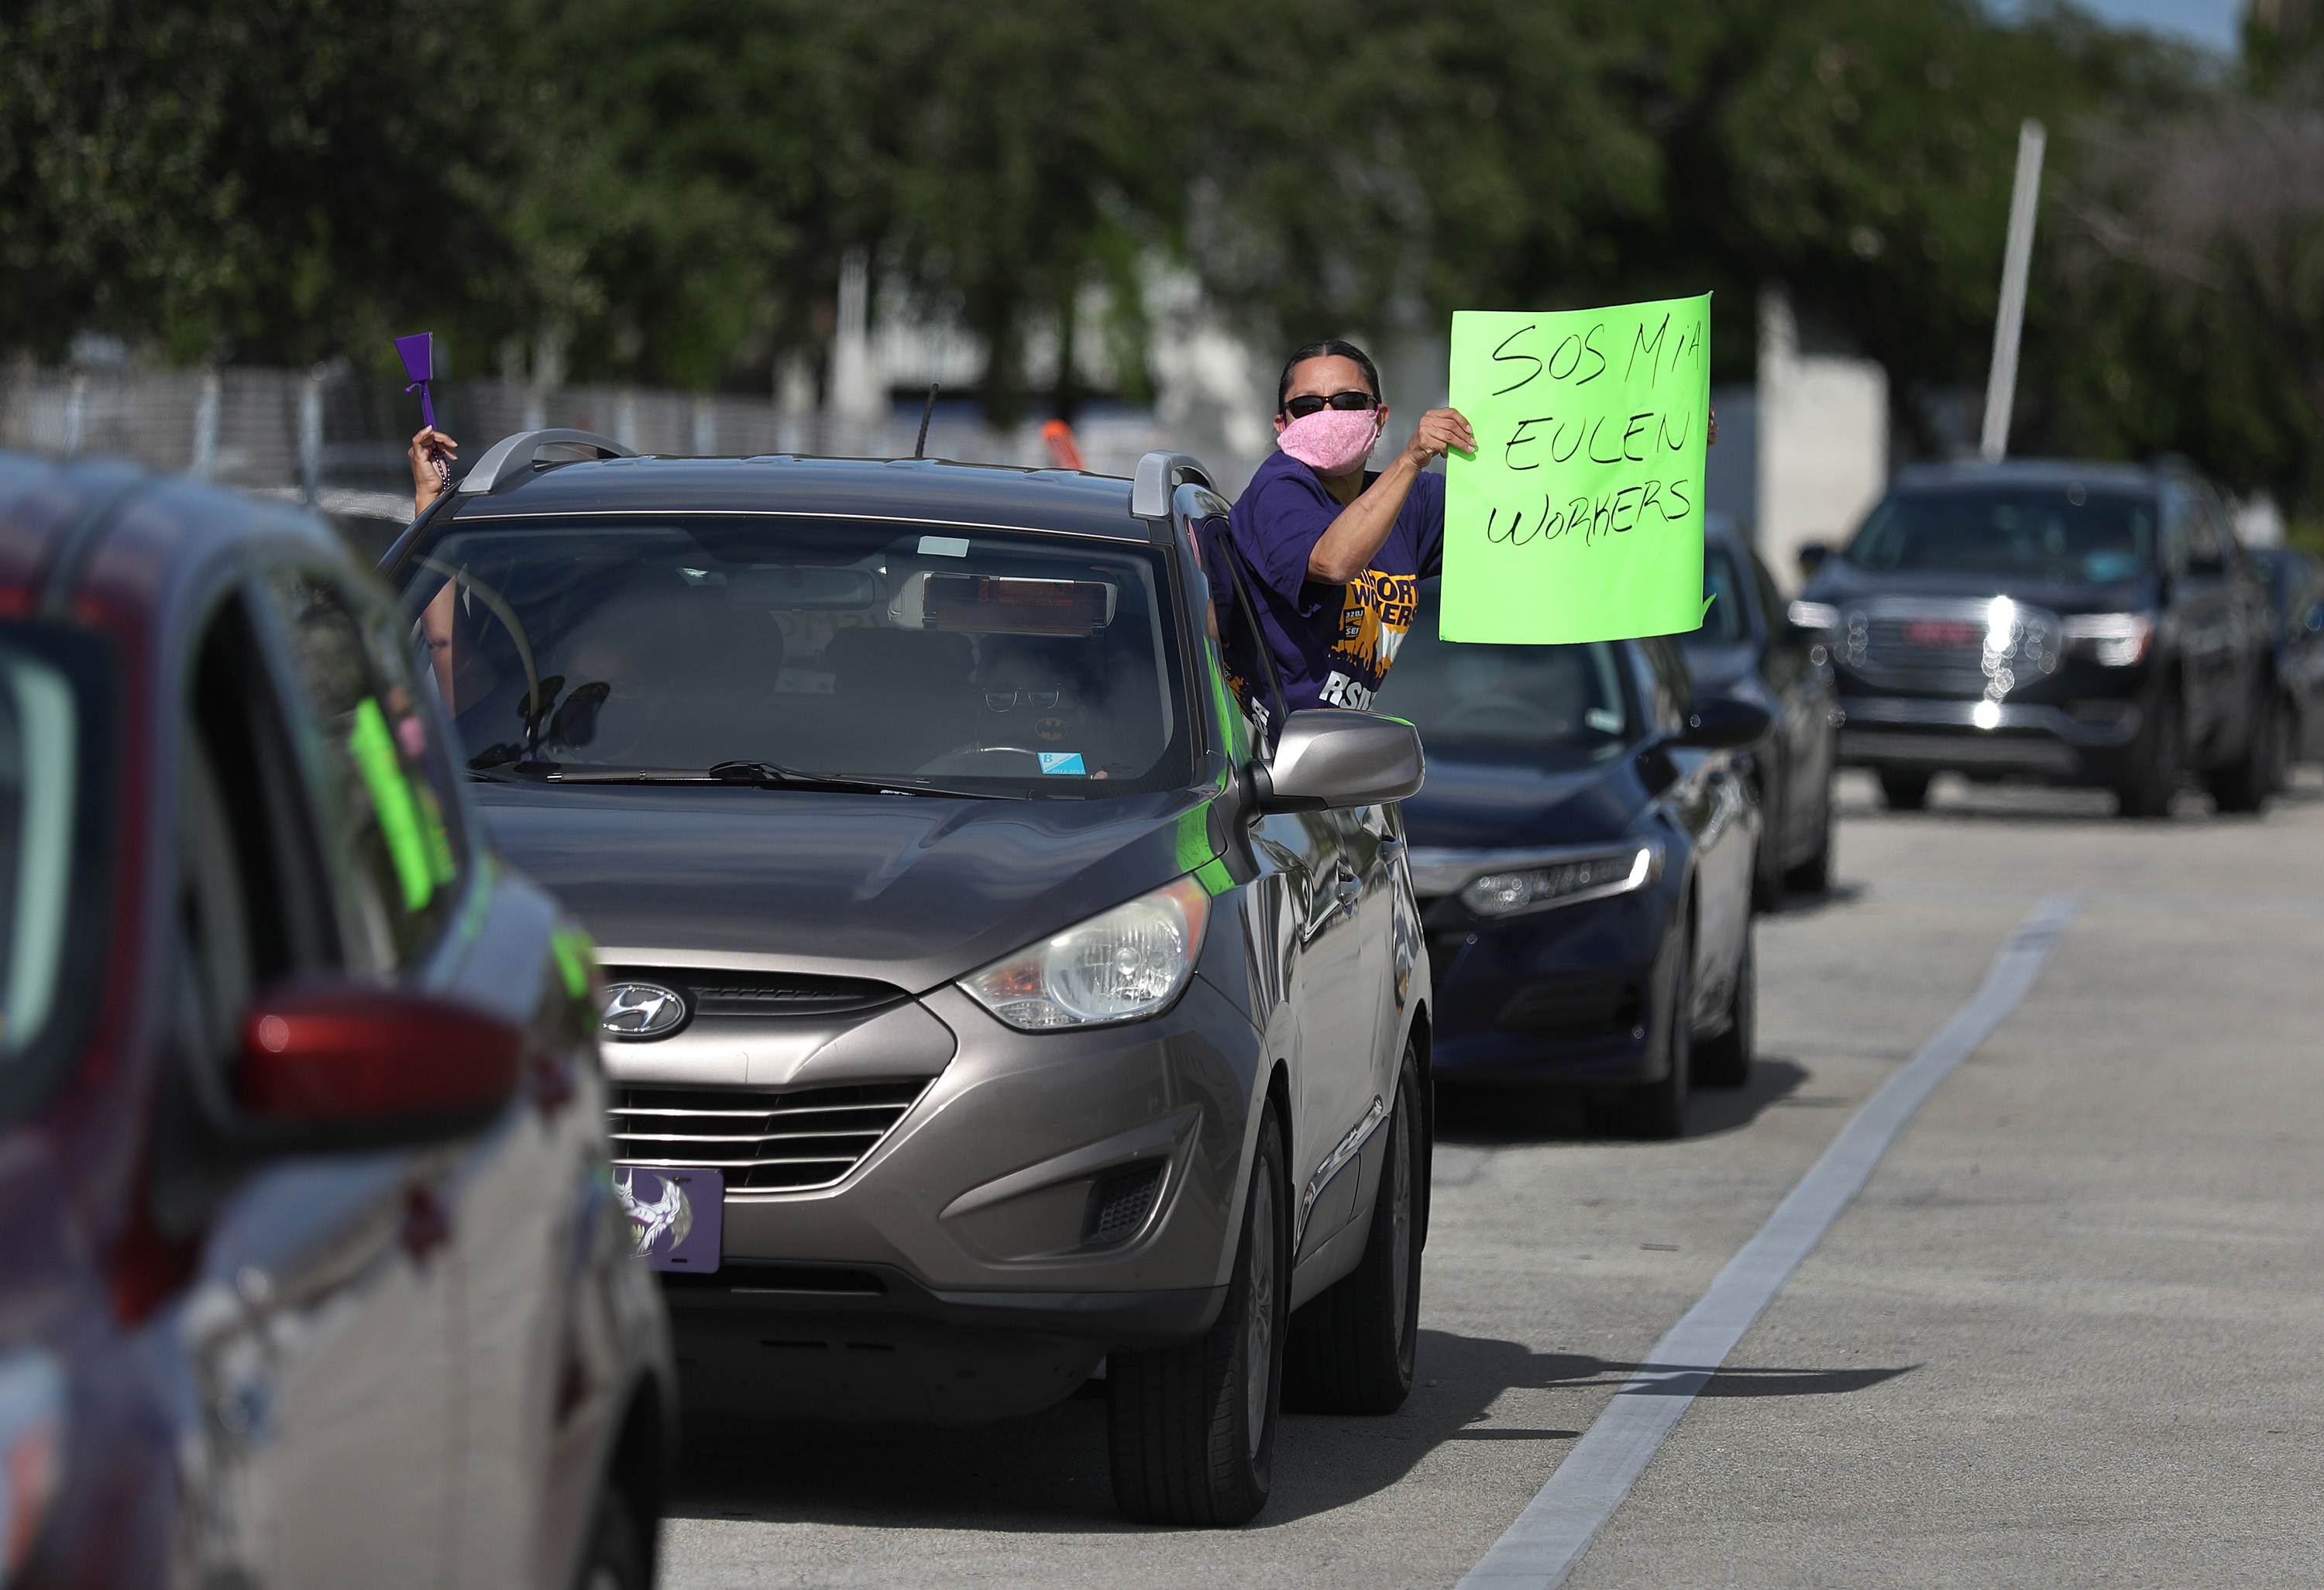 A protester at Miami International Airport on May 12, 2020, where workers were demonstrating against layoffs by the Eulen America aviation company.